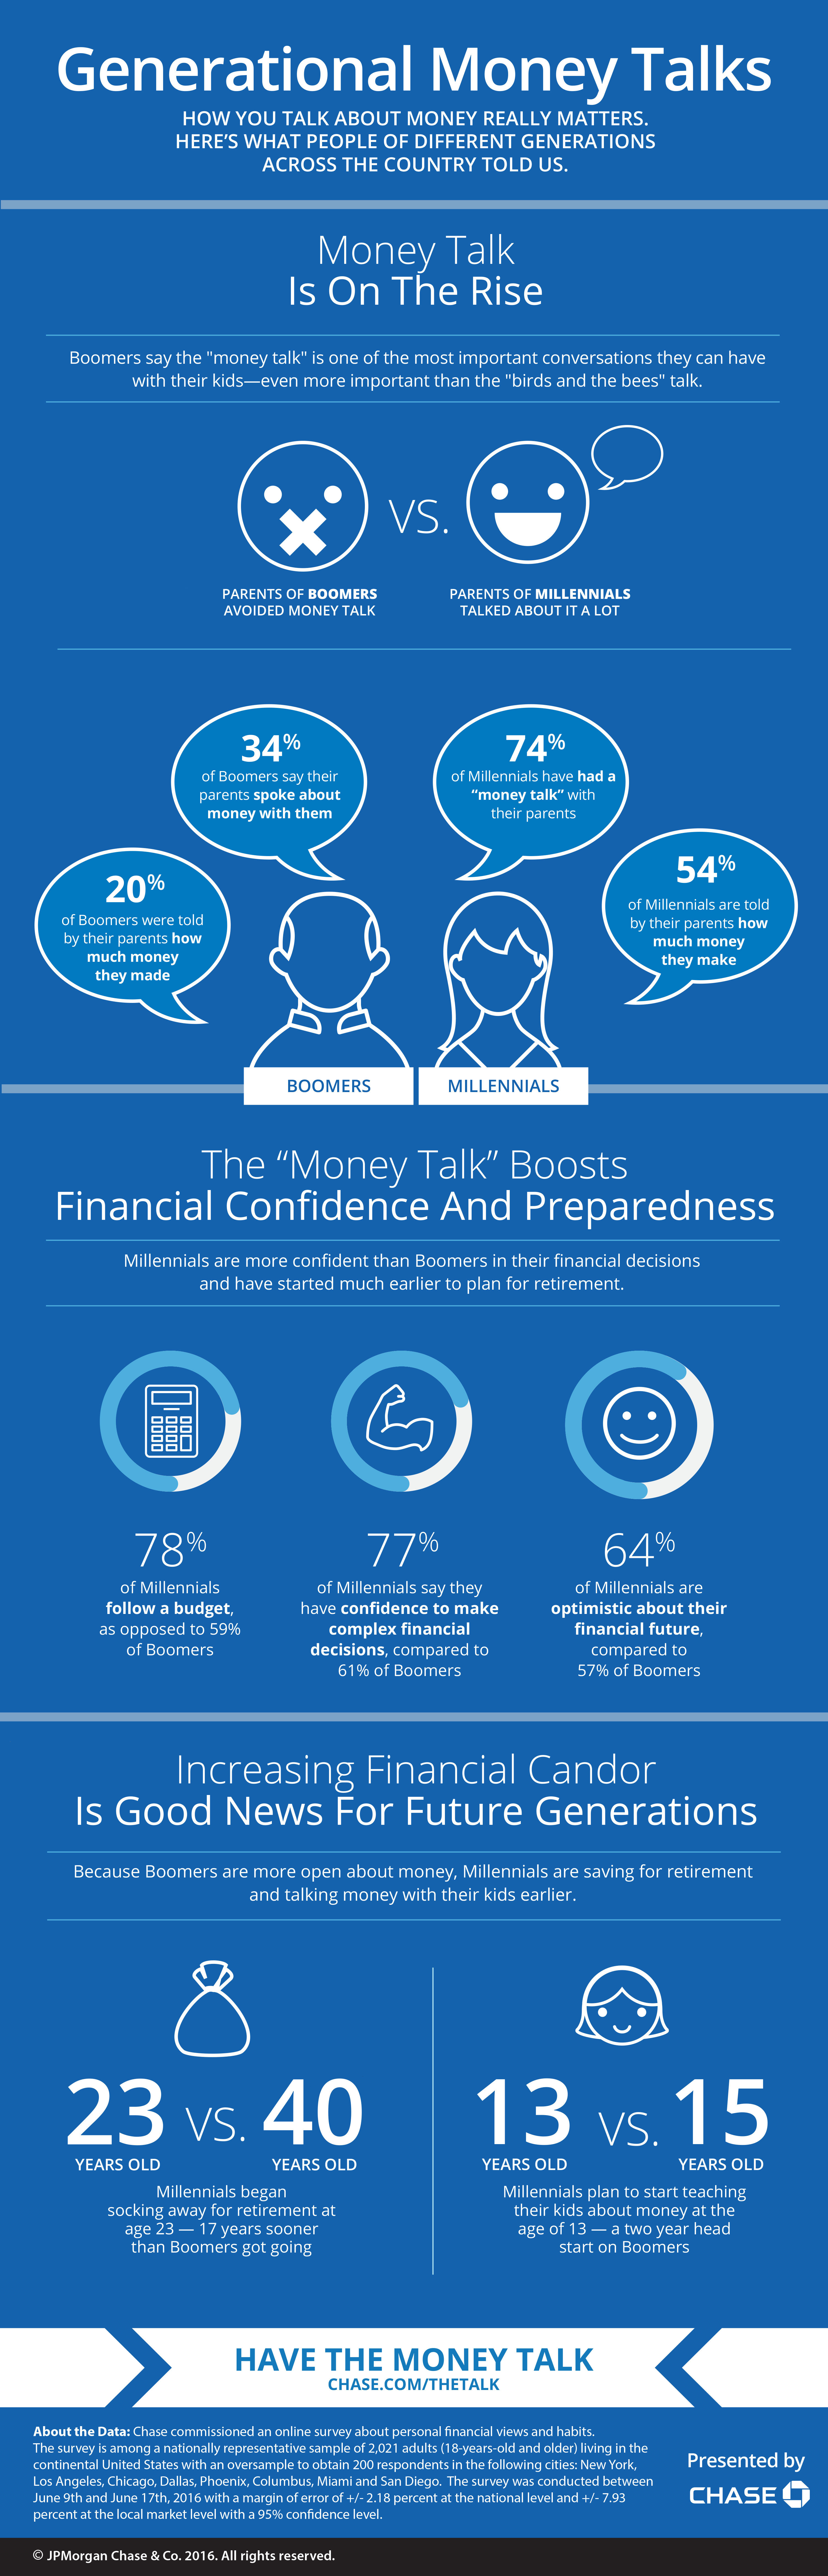 Chase examines the differences, similarities and ramifications of how different generations discuss and feel about money in new Generational Money Talks series.(Graphic: Business Wire)